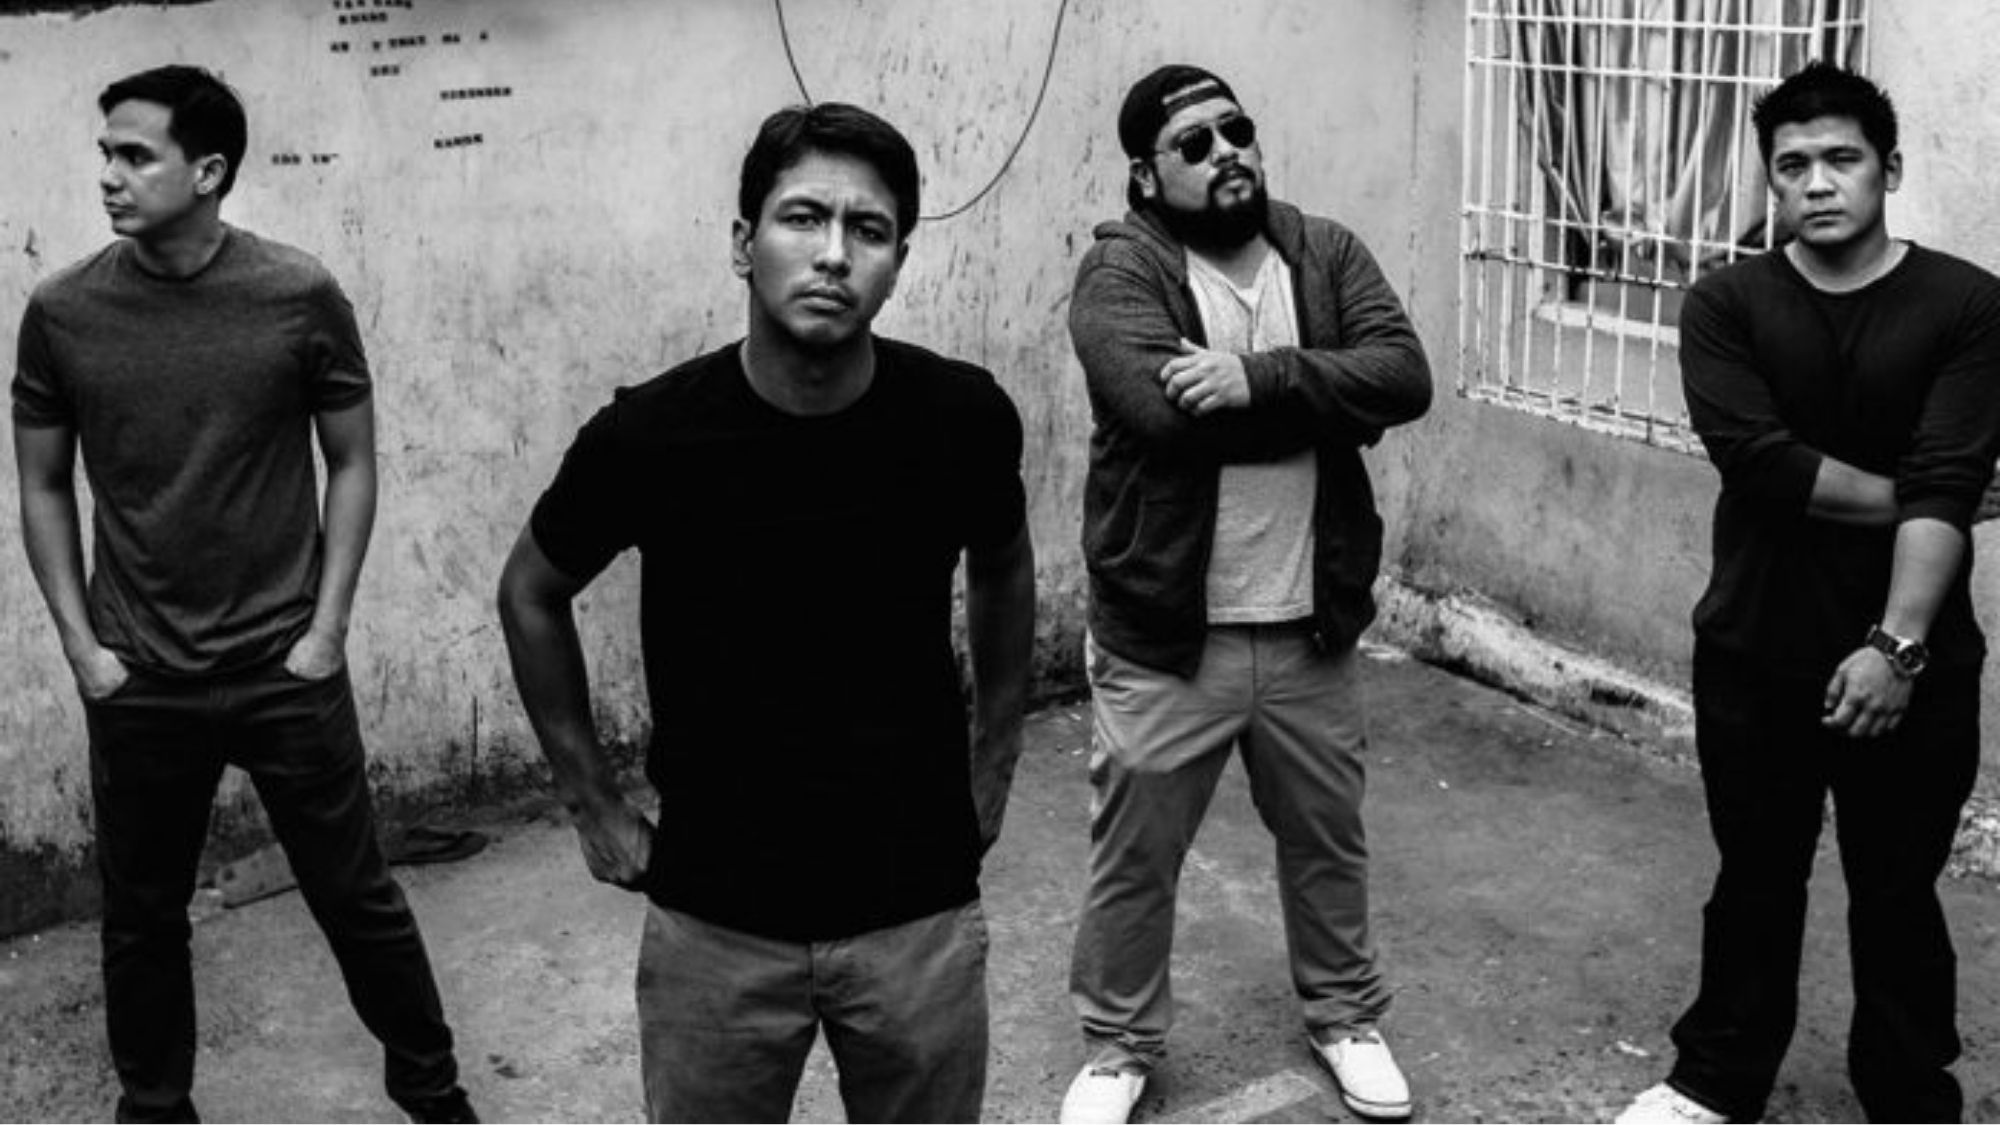 Dicta License releases new album 'Pagbigkas' after over a decade